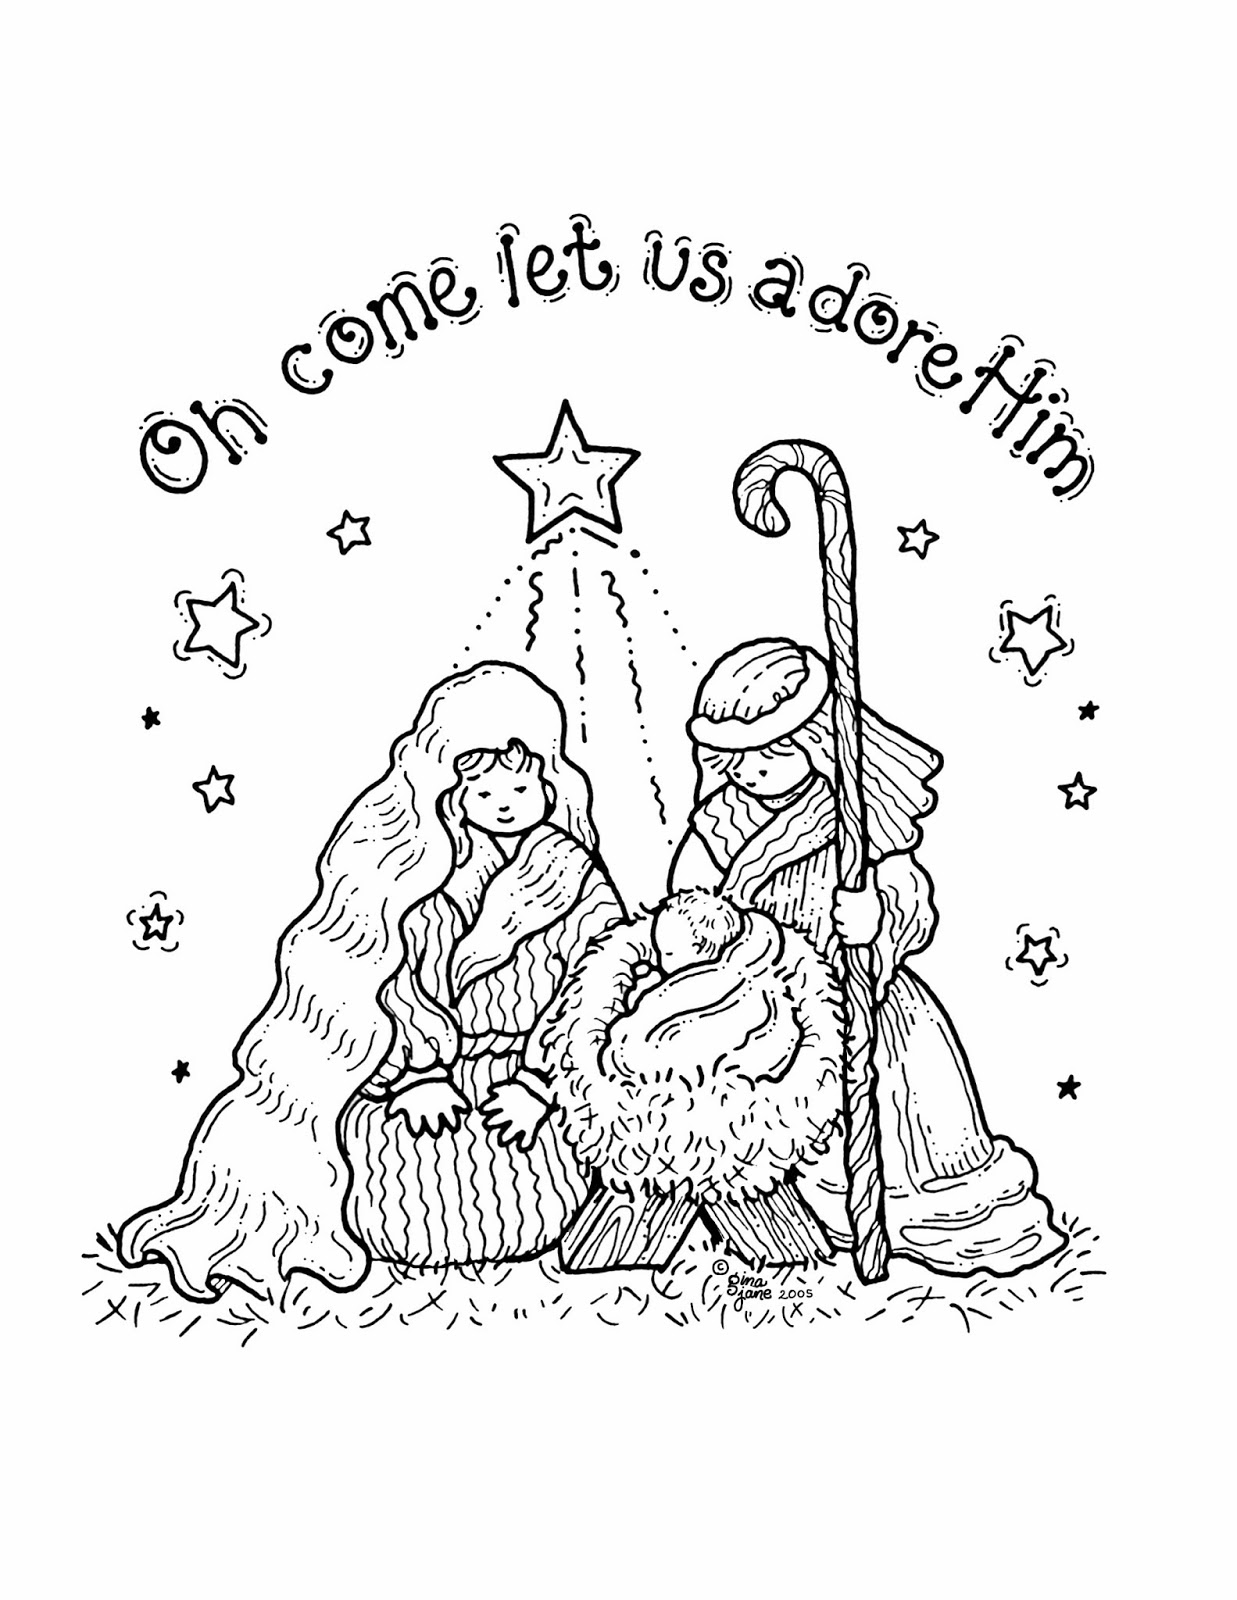 nativity coloring sheets - Nativity Coloring Pages Printable